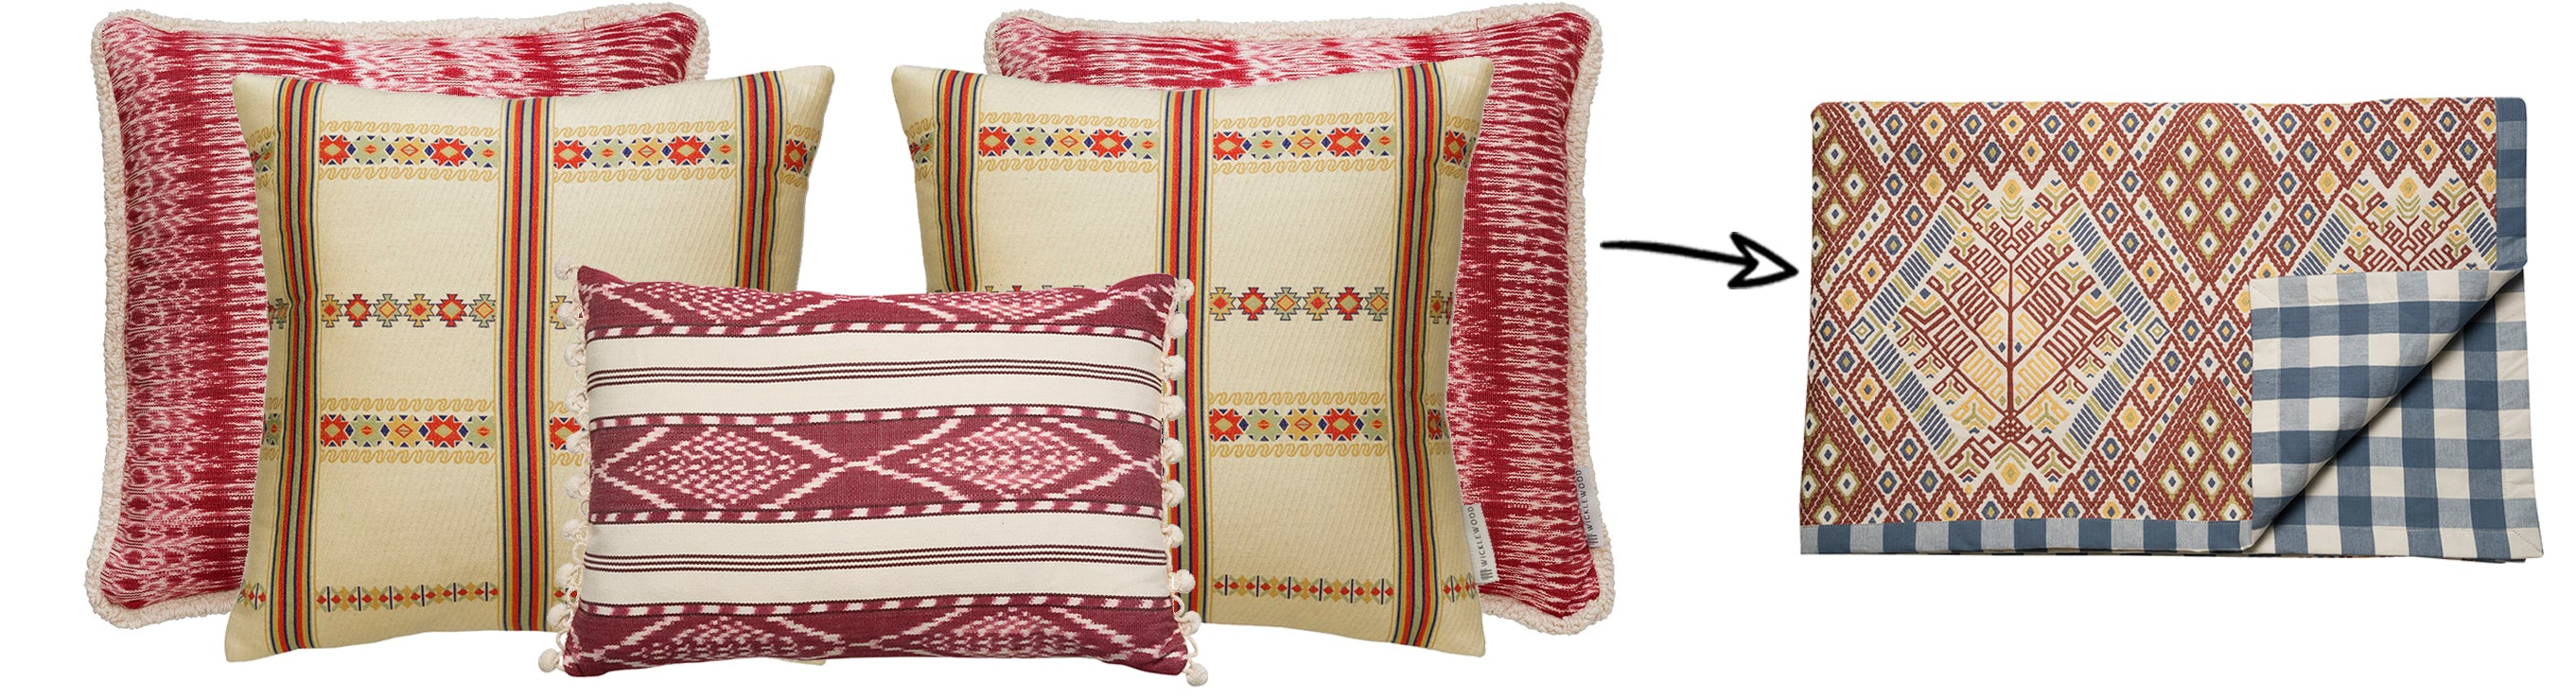 Wicklewood's top festive cushions combos, including a red chalet themed look to help inspire you to decorate your home differently this Holliday season.